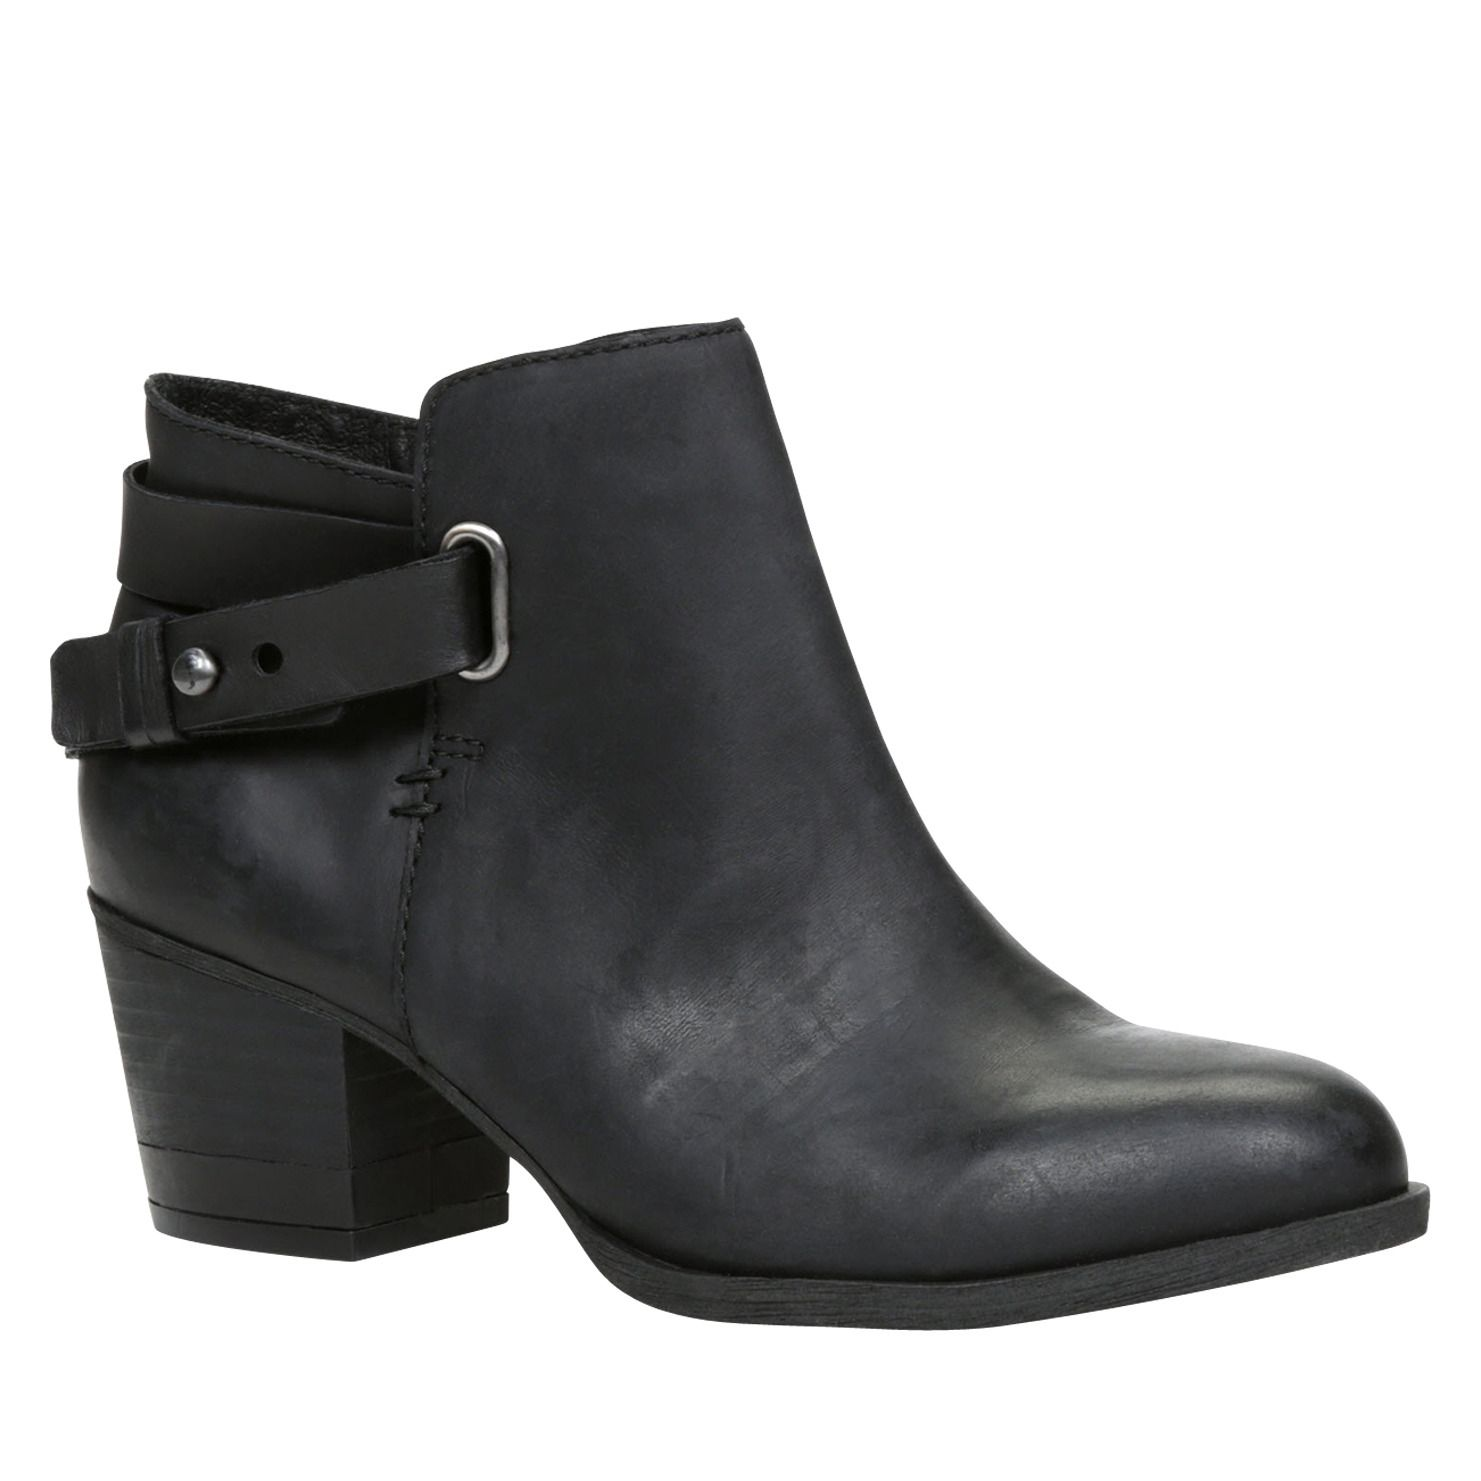 Allie Women S Ankle Boots Boots For Sale At Aldo Shoes